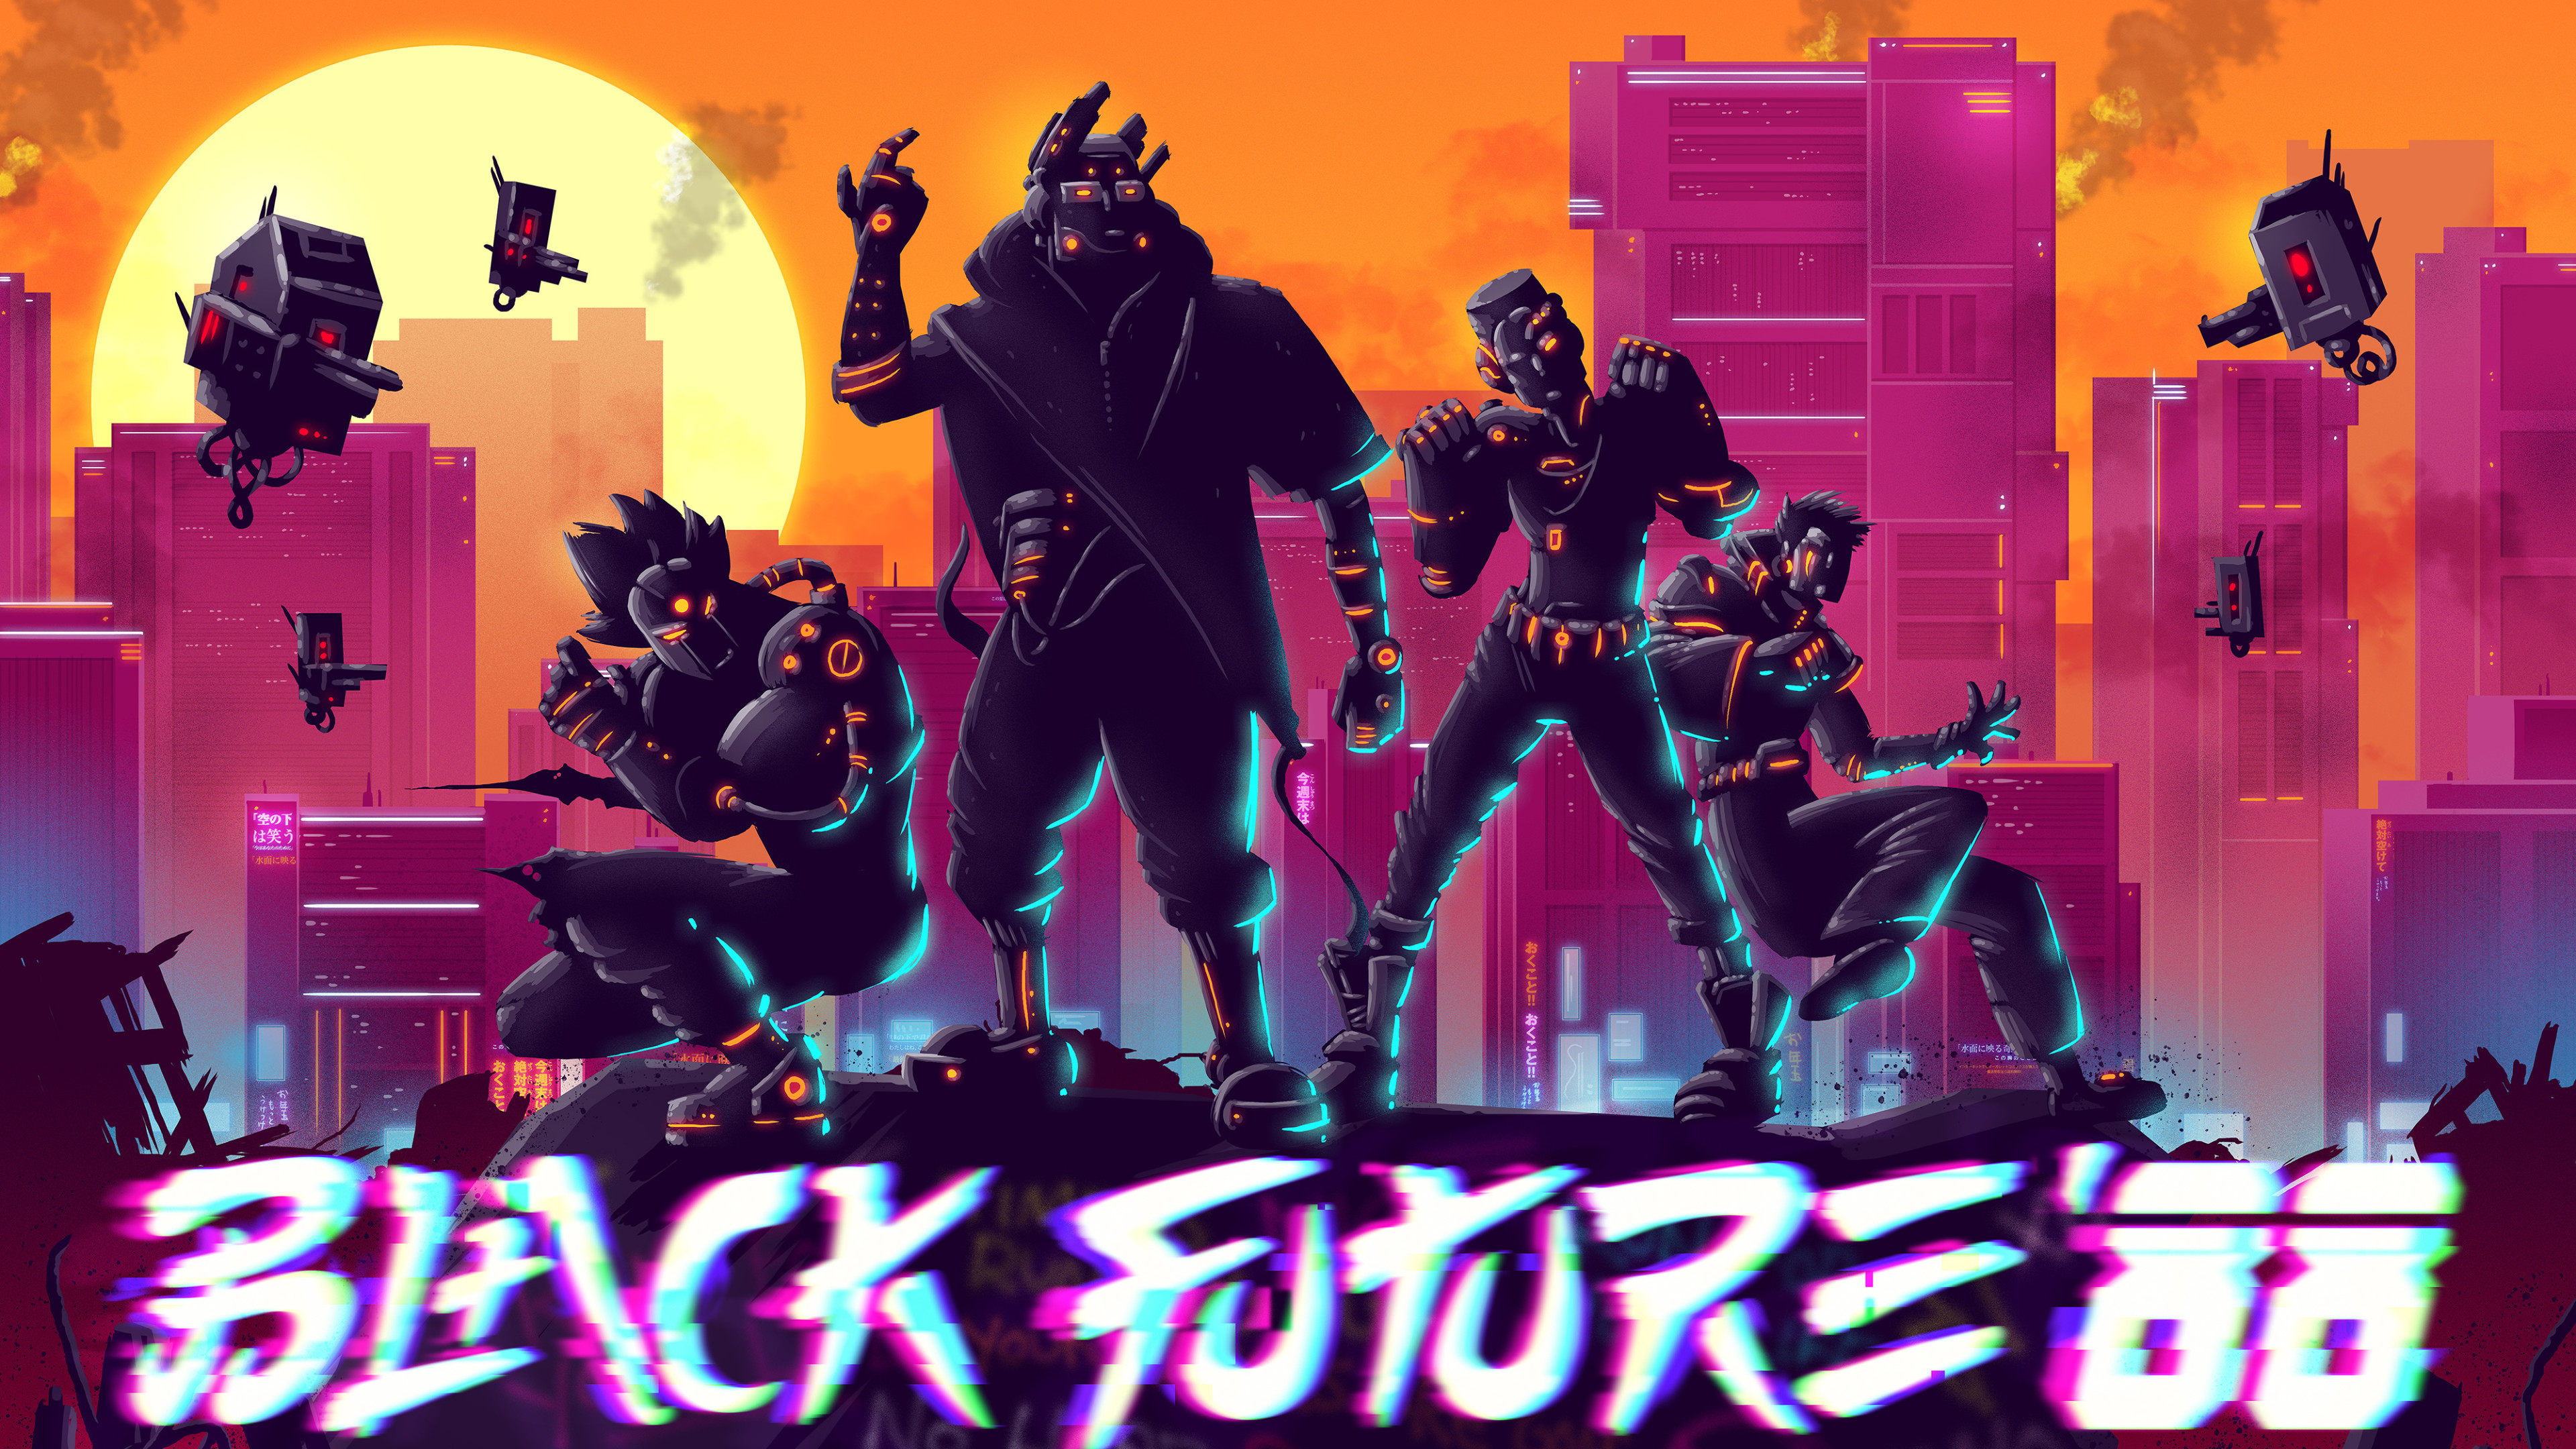 black future 88 di 3840x2160 1 - Black Future 88 - Black Future 88 game wallpaper 4k, Black Future 88 4k wallpaper